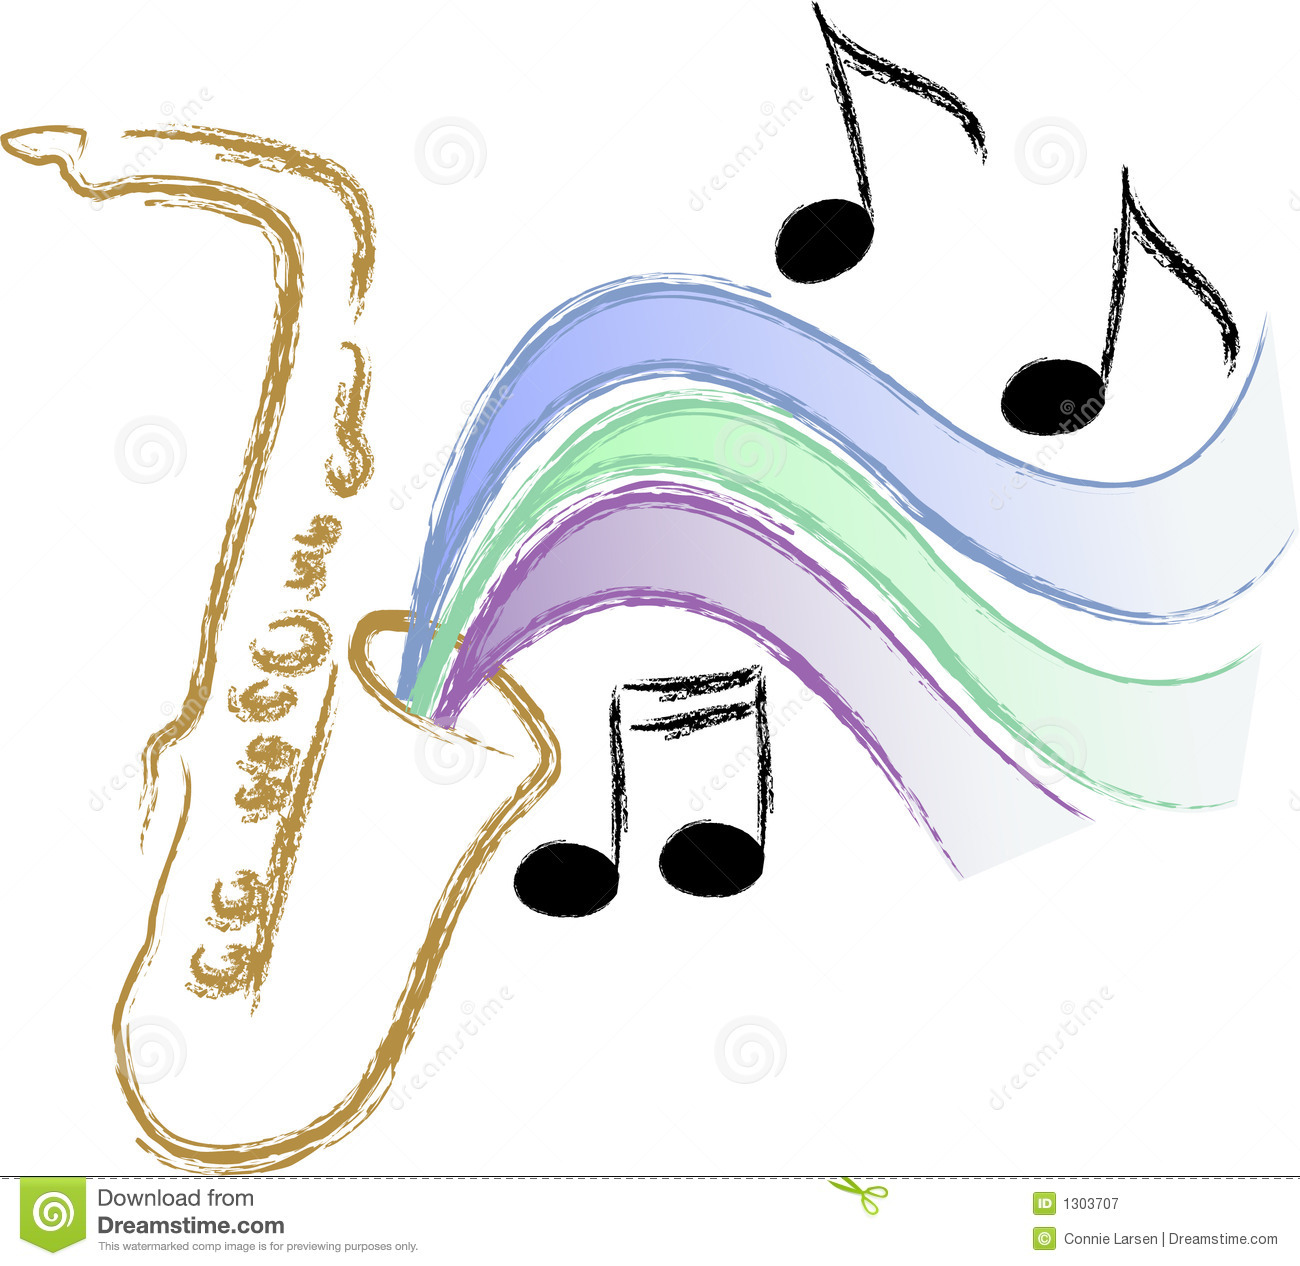 Illustration of a saxophone with stylized music symbolizing jazz ...